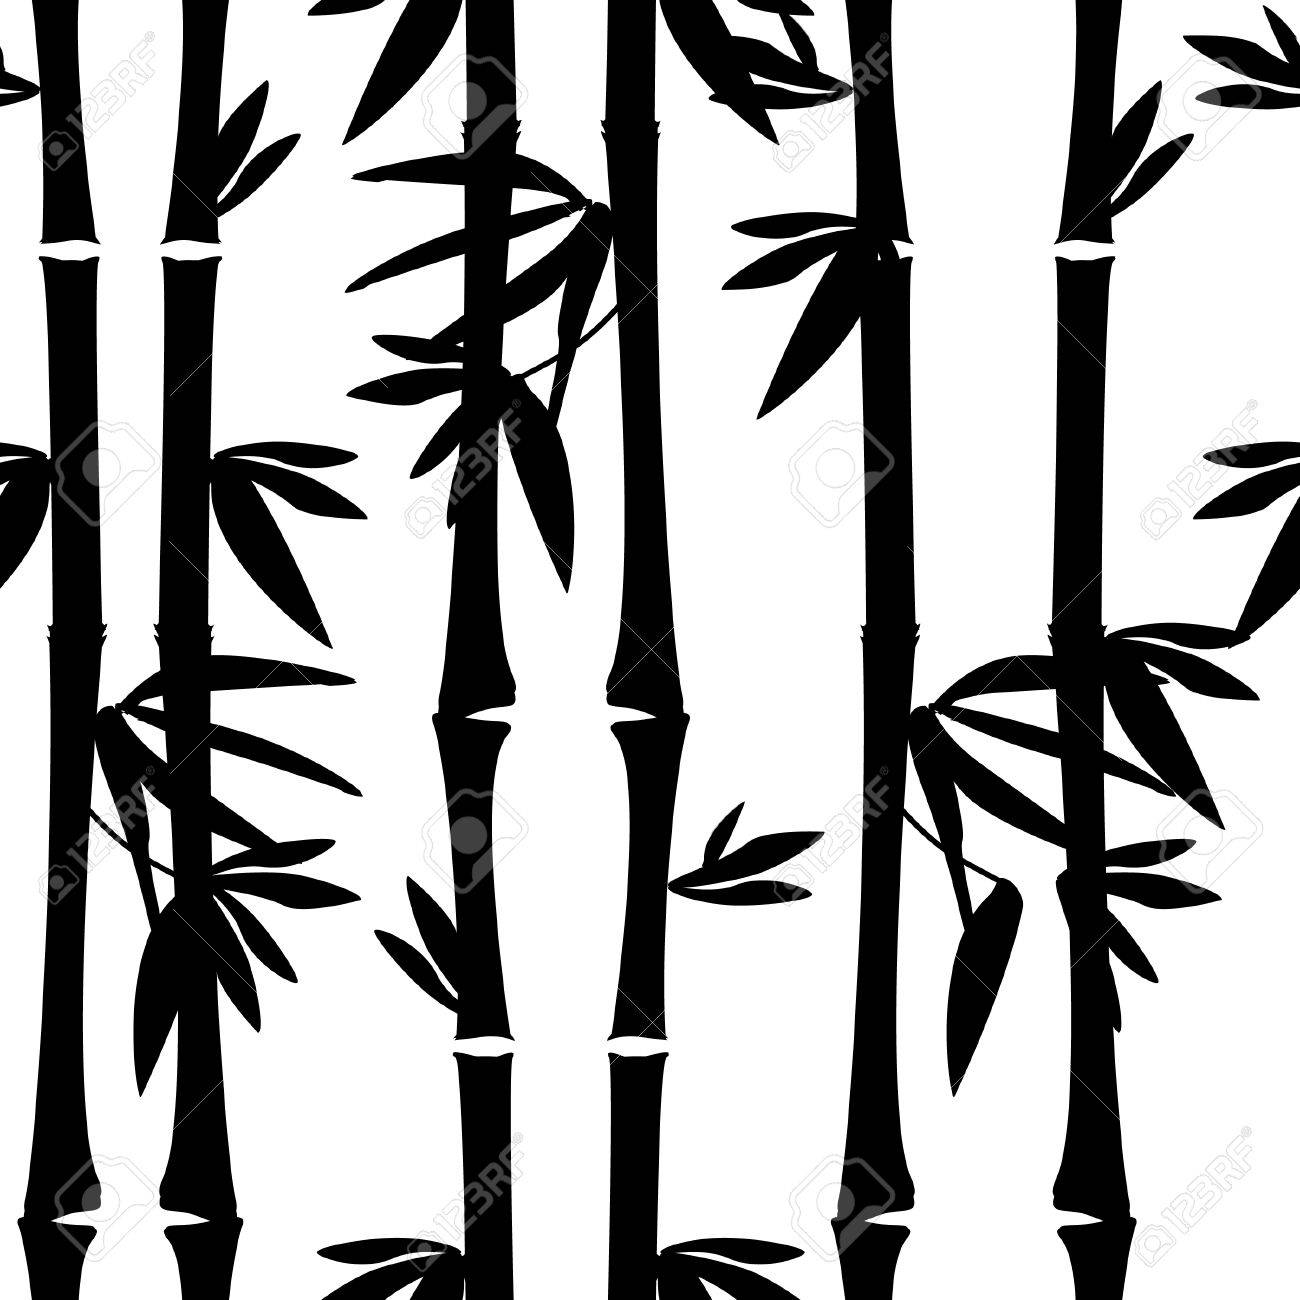 black bamboo seamless pattern vector bamboo tree leaves branches royalty free cliparts vectors and stock illustration image 40211256 black bamboo seamless pattern vector bamboo tree leaves branches